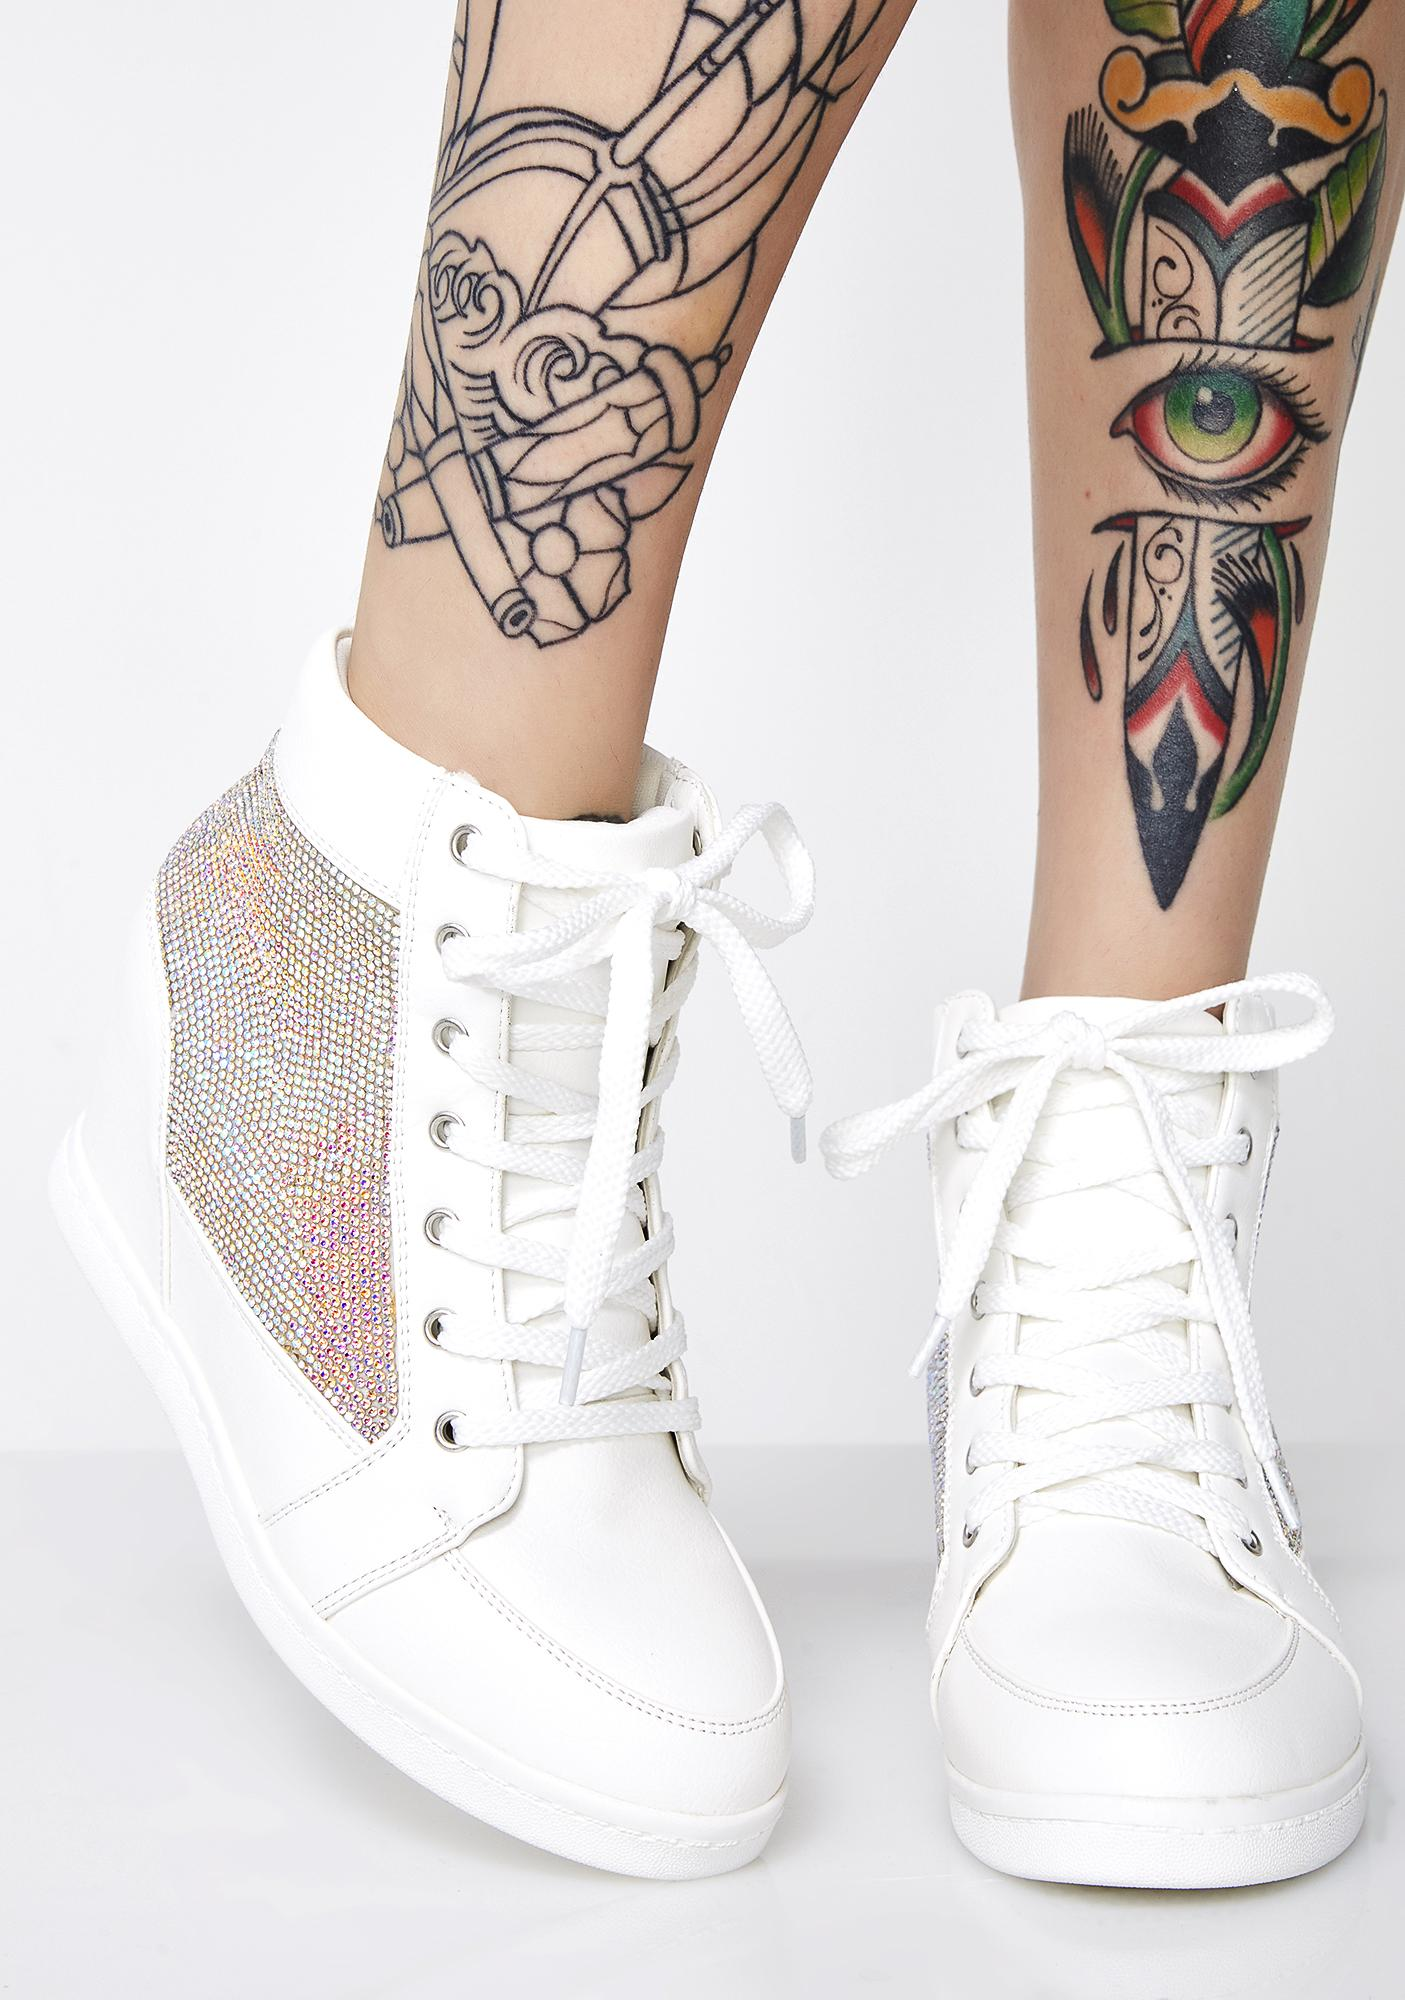 Snow Life Of Leisure Wedge Sneakers